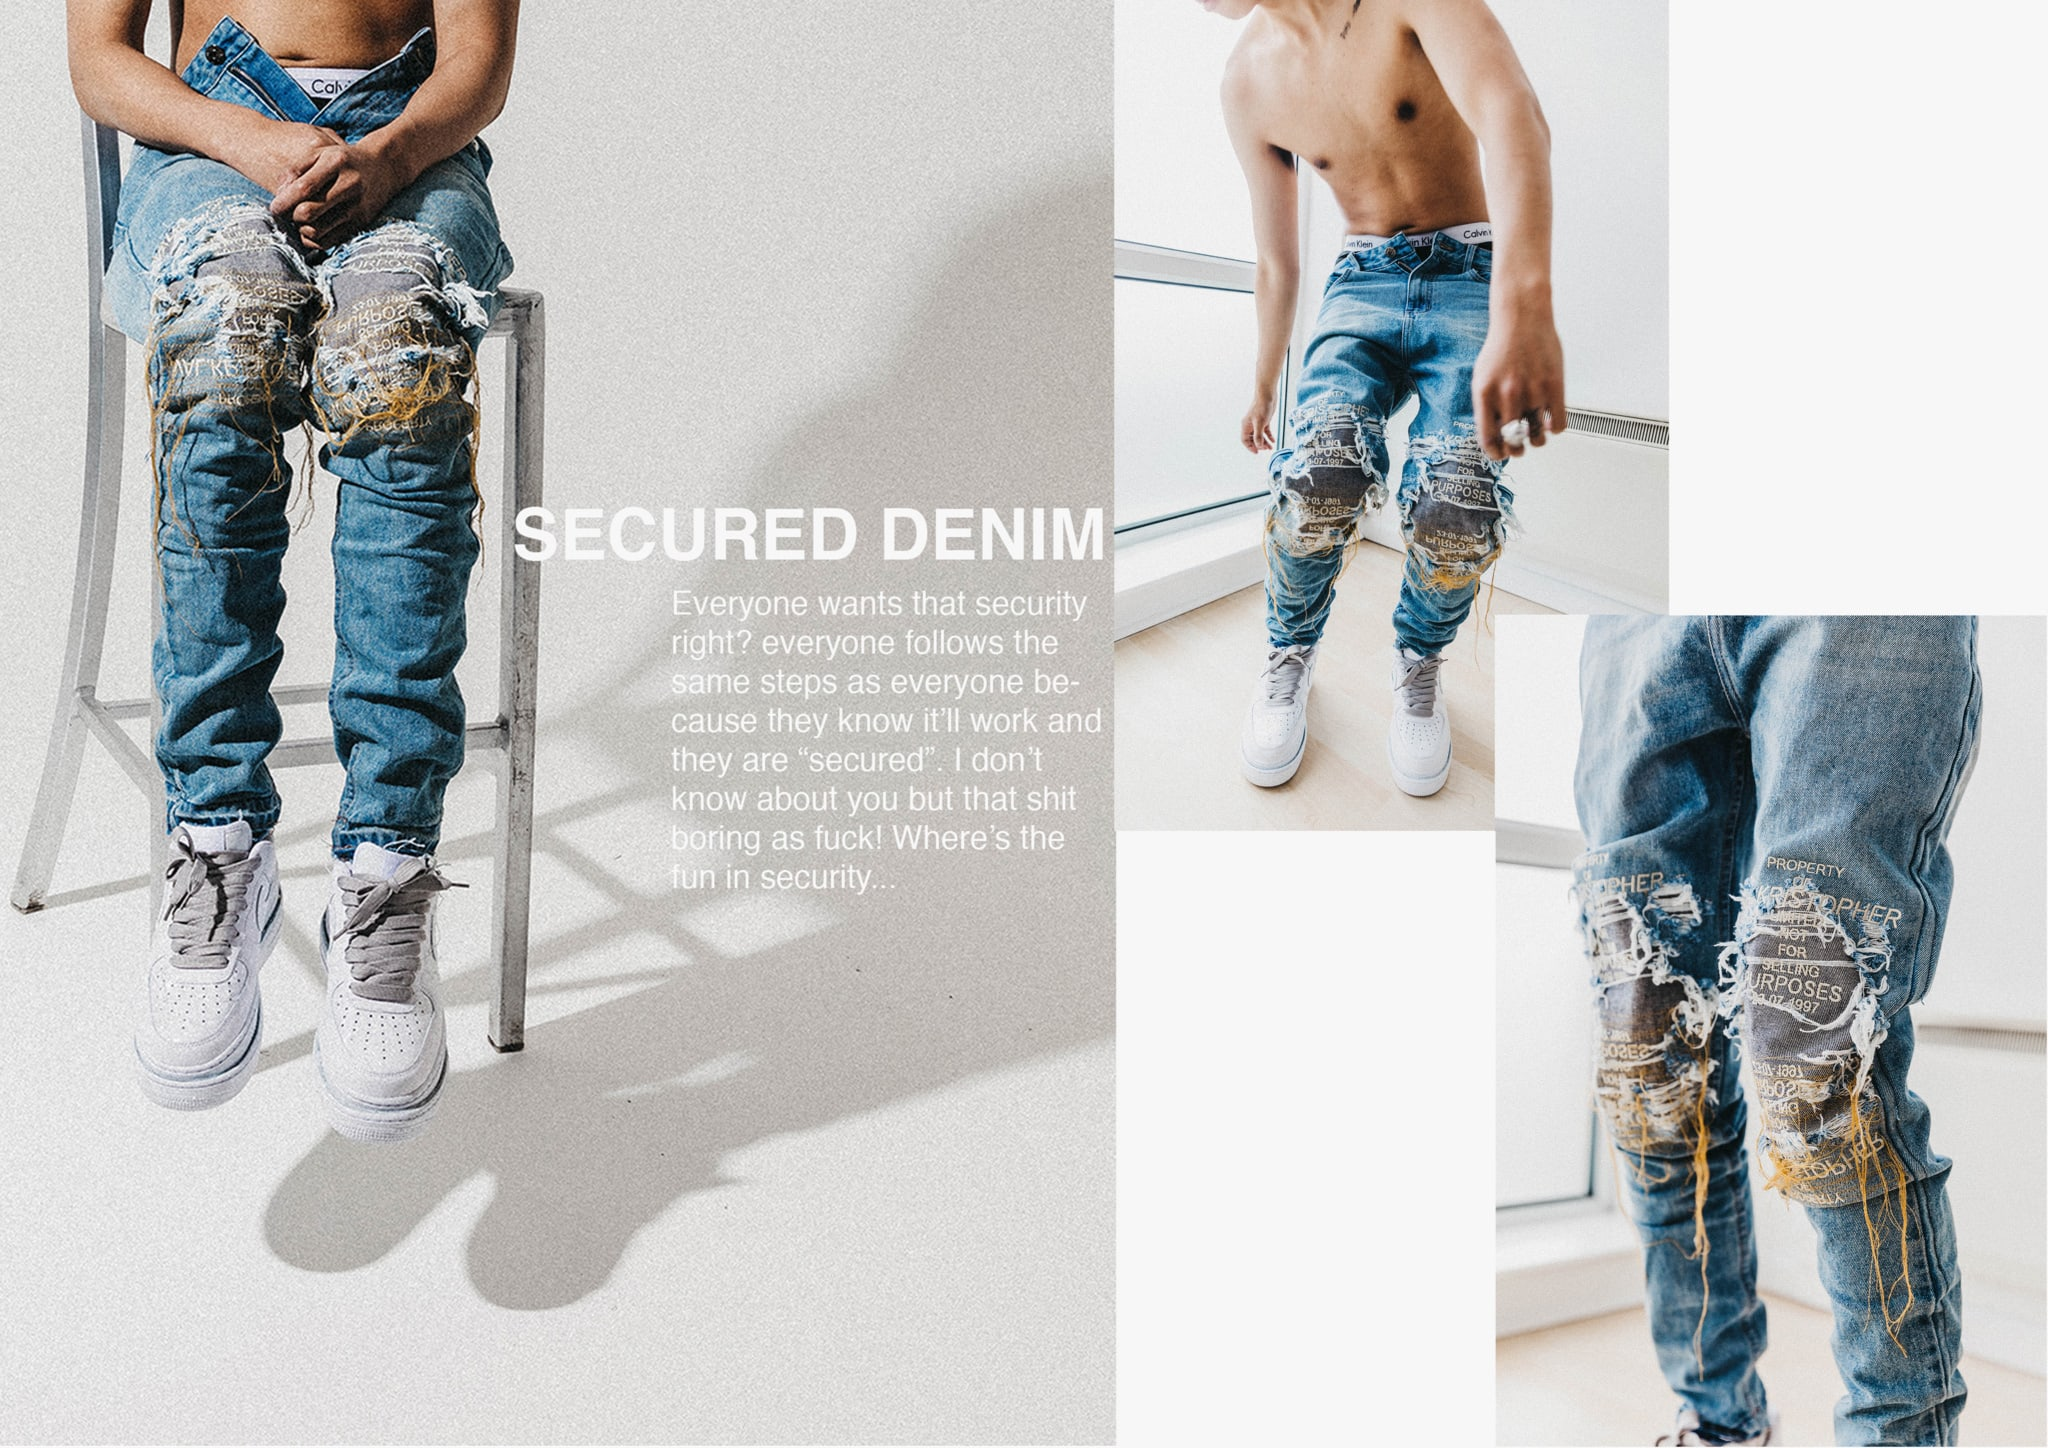 secured denim